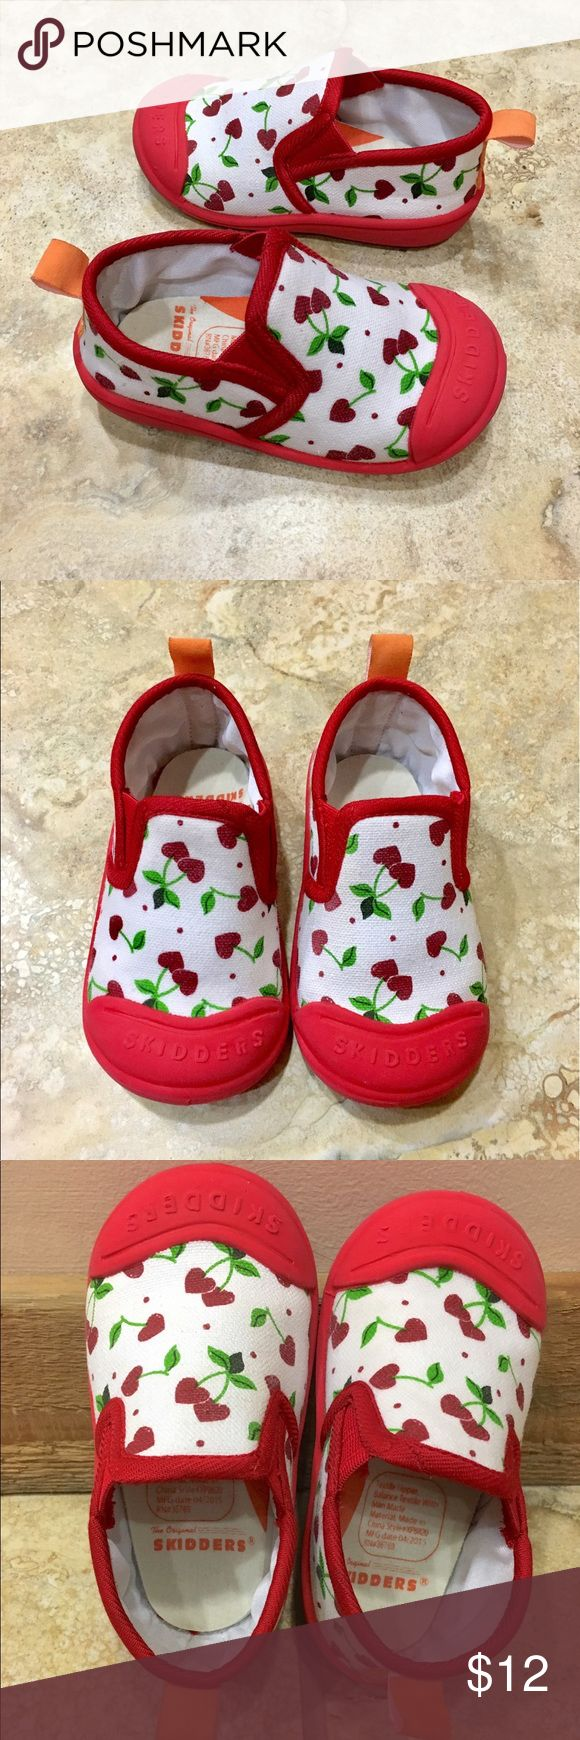 Skidders Toddler Cherry Heart Shoes (24 Months) Super cute slip on canvas shoes with great traction. My daughter wore only a couple times so in EUC. Size 8 (24 Months). These are great for wide toddler feet too! Skidders Shoes Sneakers